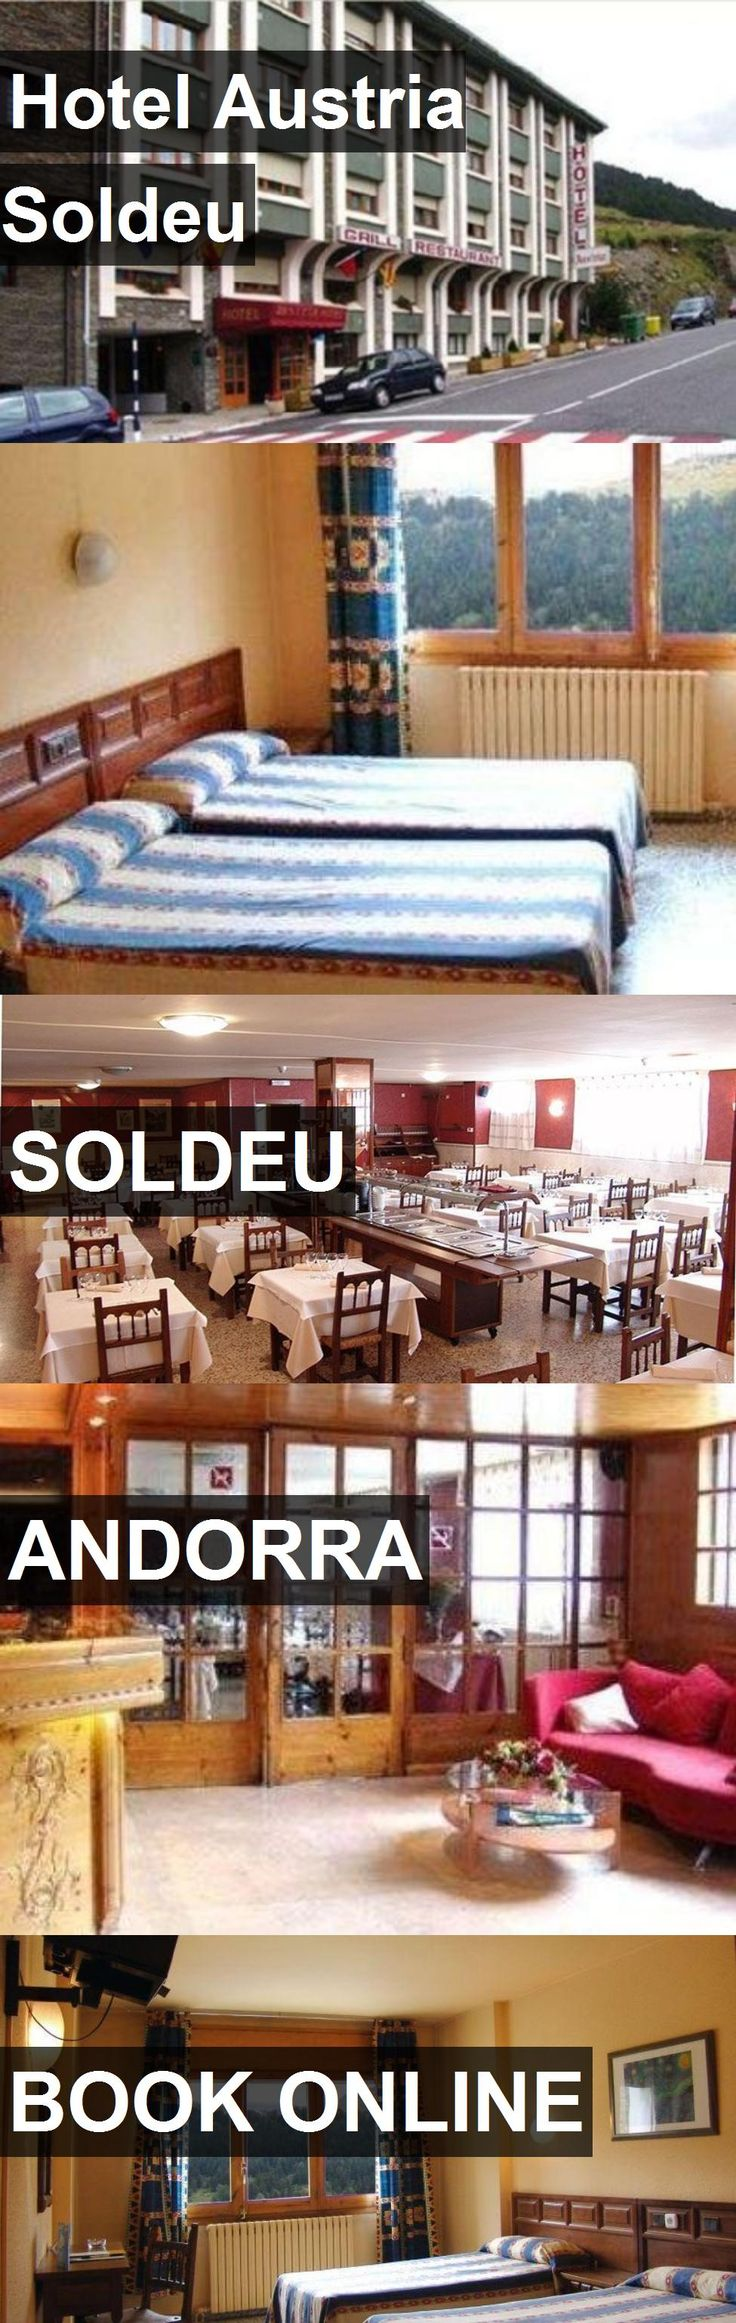 Hotel Austria Soldeu in Soldeu, Andorra. For more information, photos, reviews and best prices please follow the link. #Andorra #Soldeu #travel #vacation #hotel